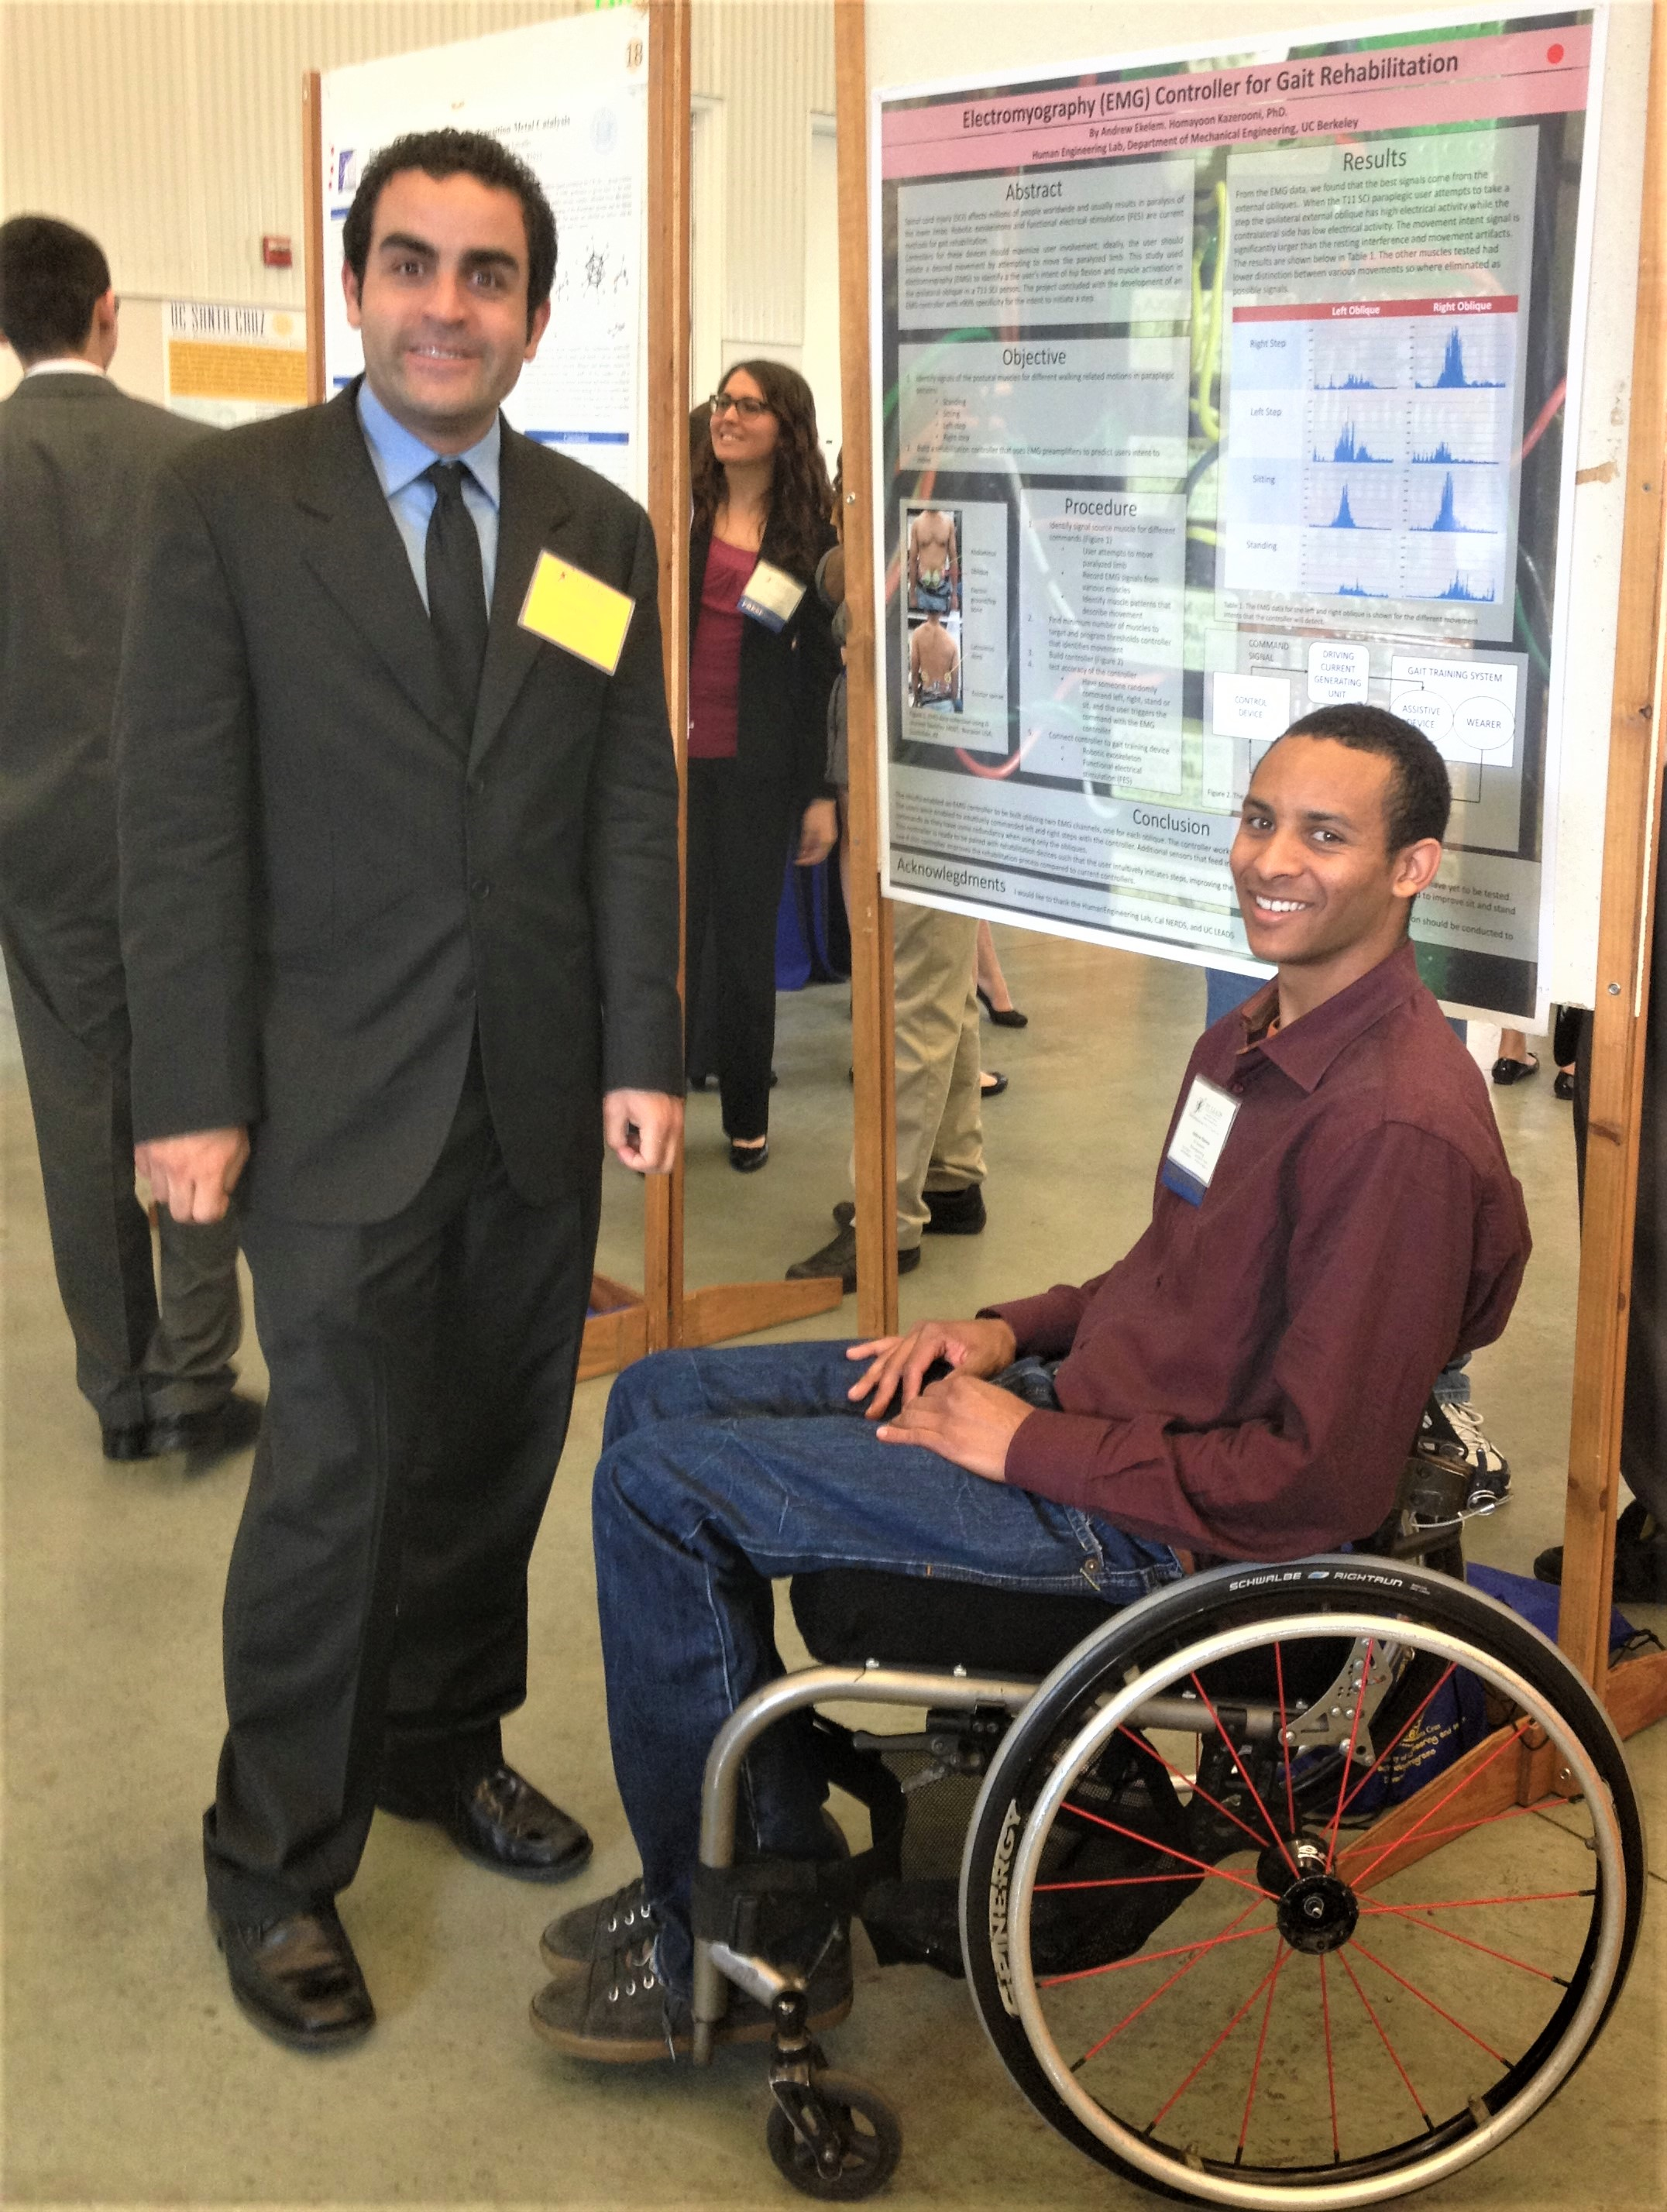 A man standing next to a male student research presenter, who is in a wheelchair, next to his research poster.